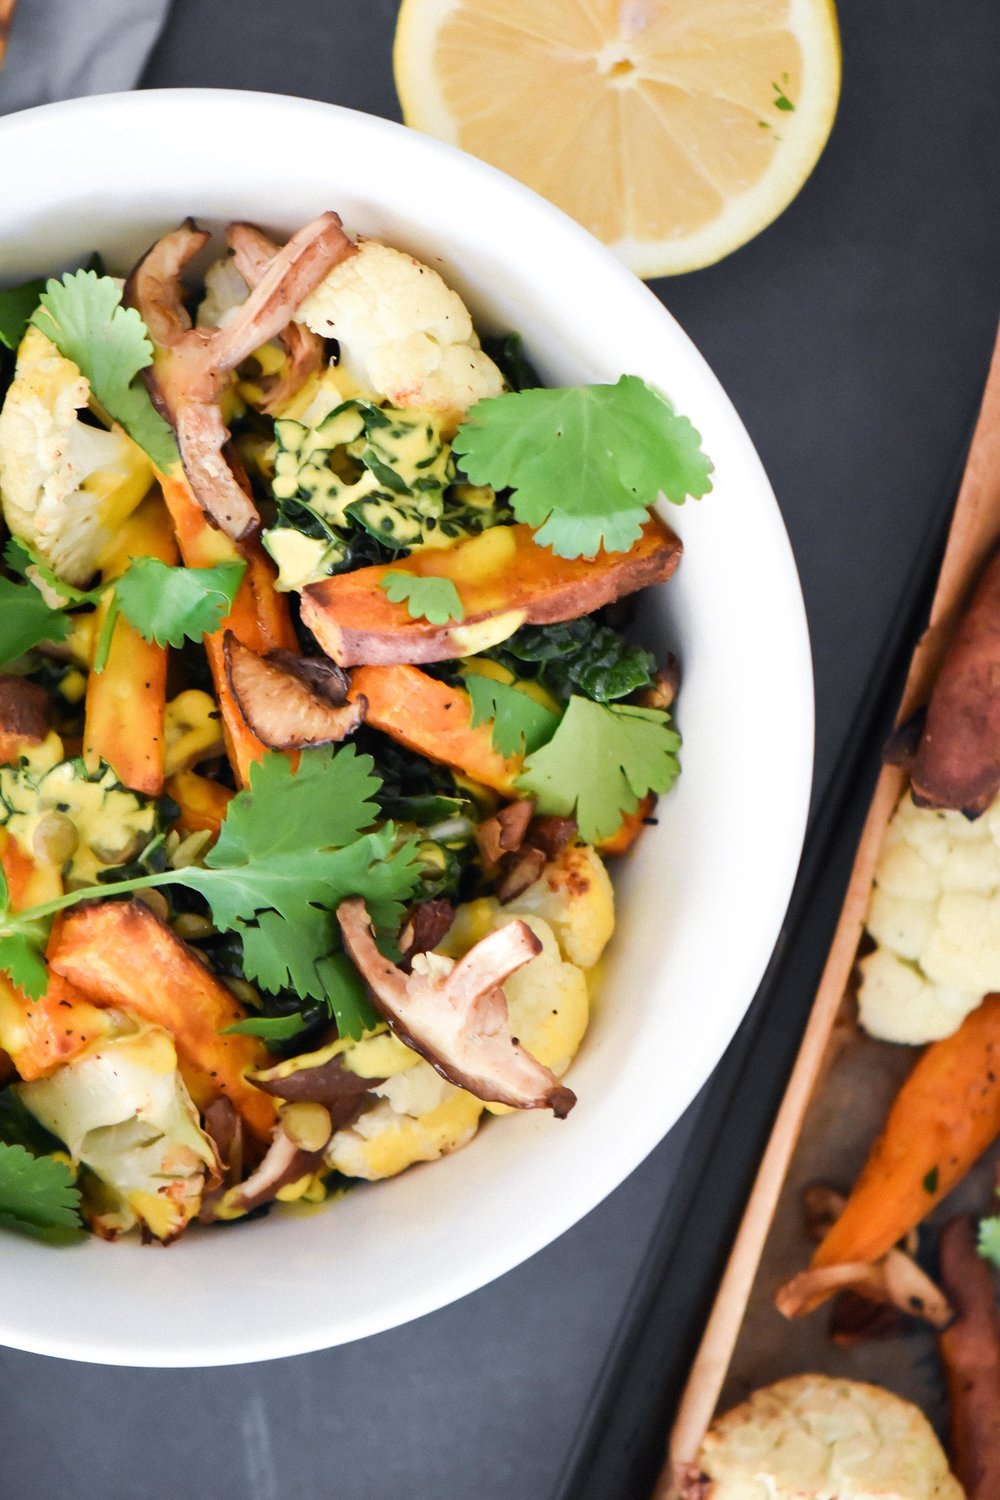 hippie bowl with roasted veggies and turmeric sauce